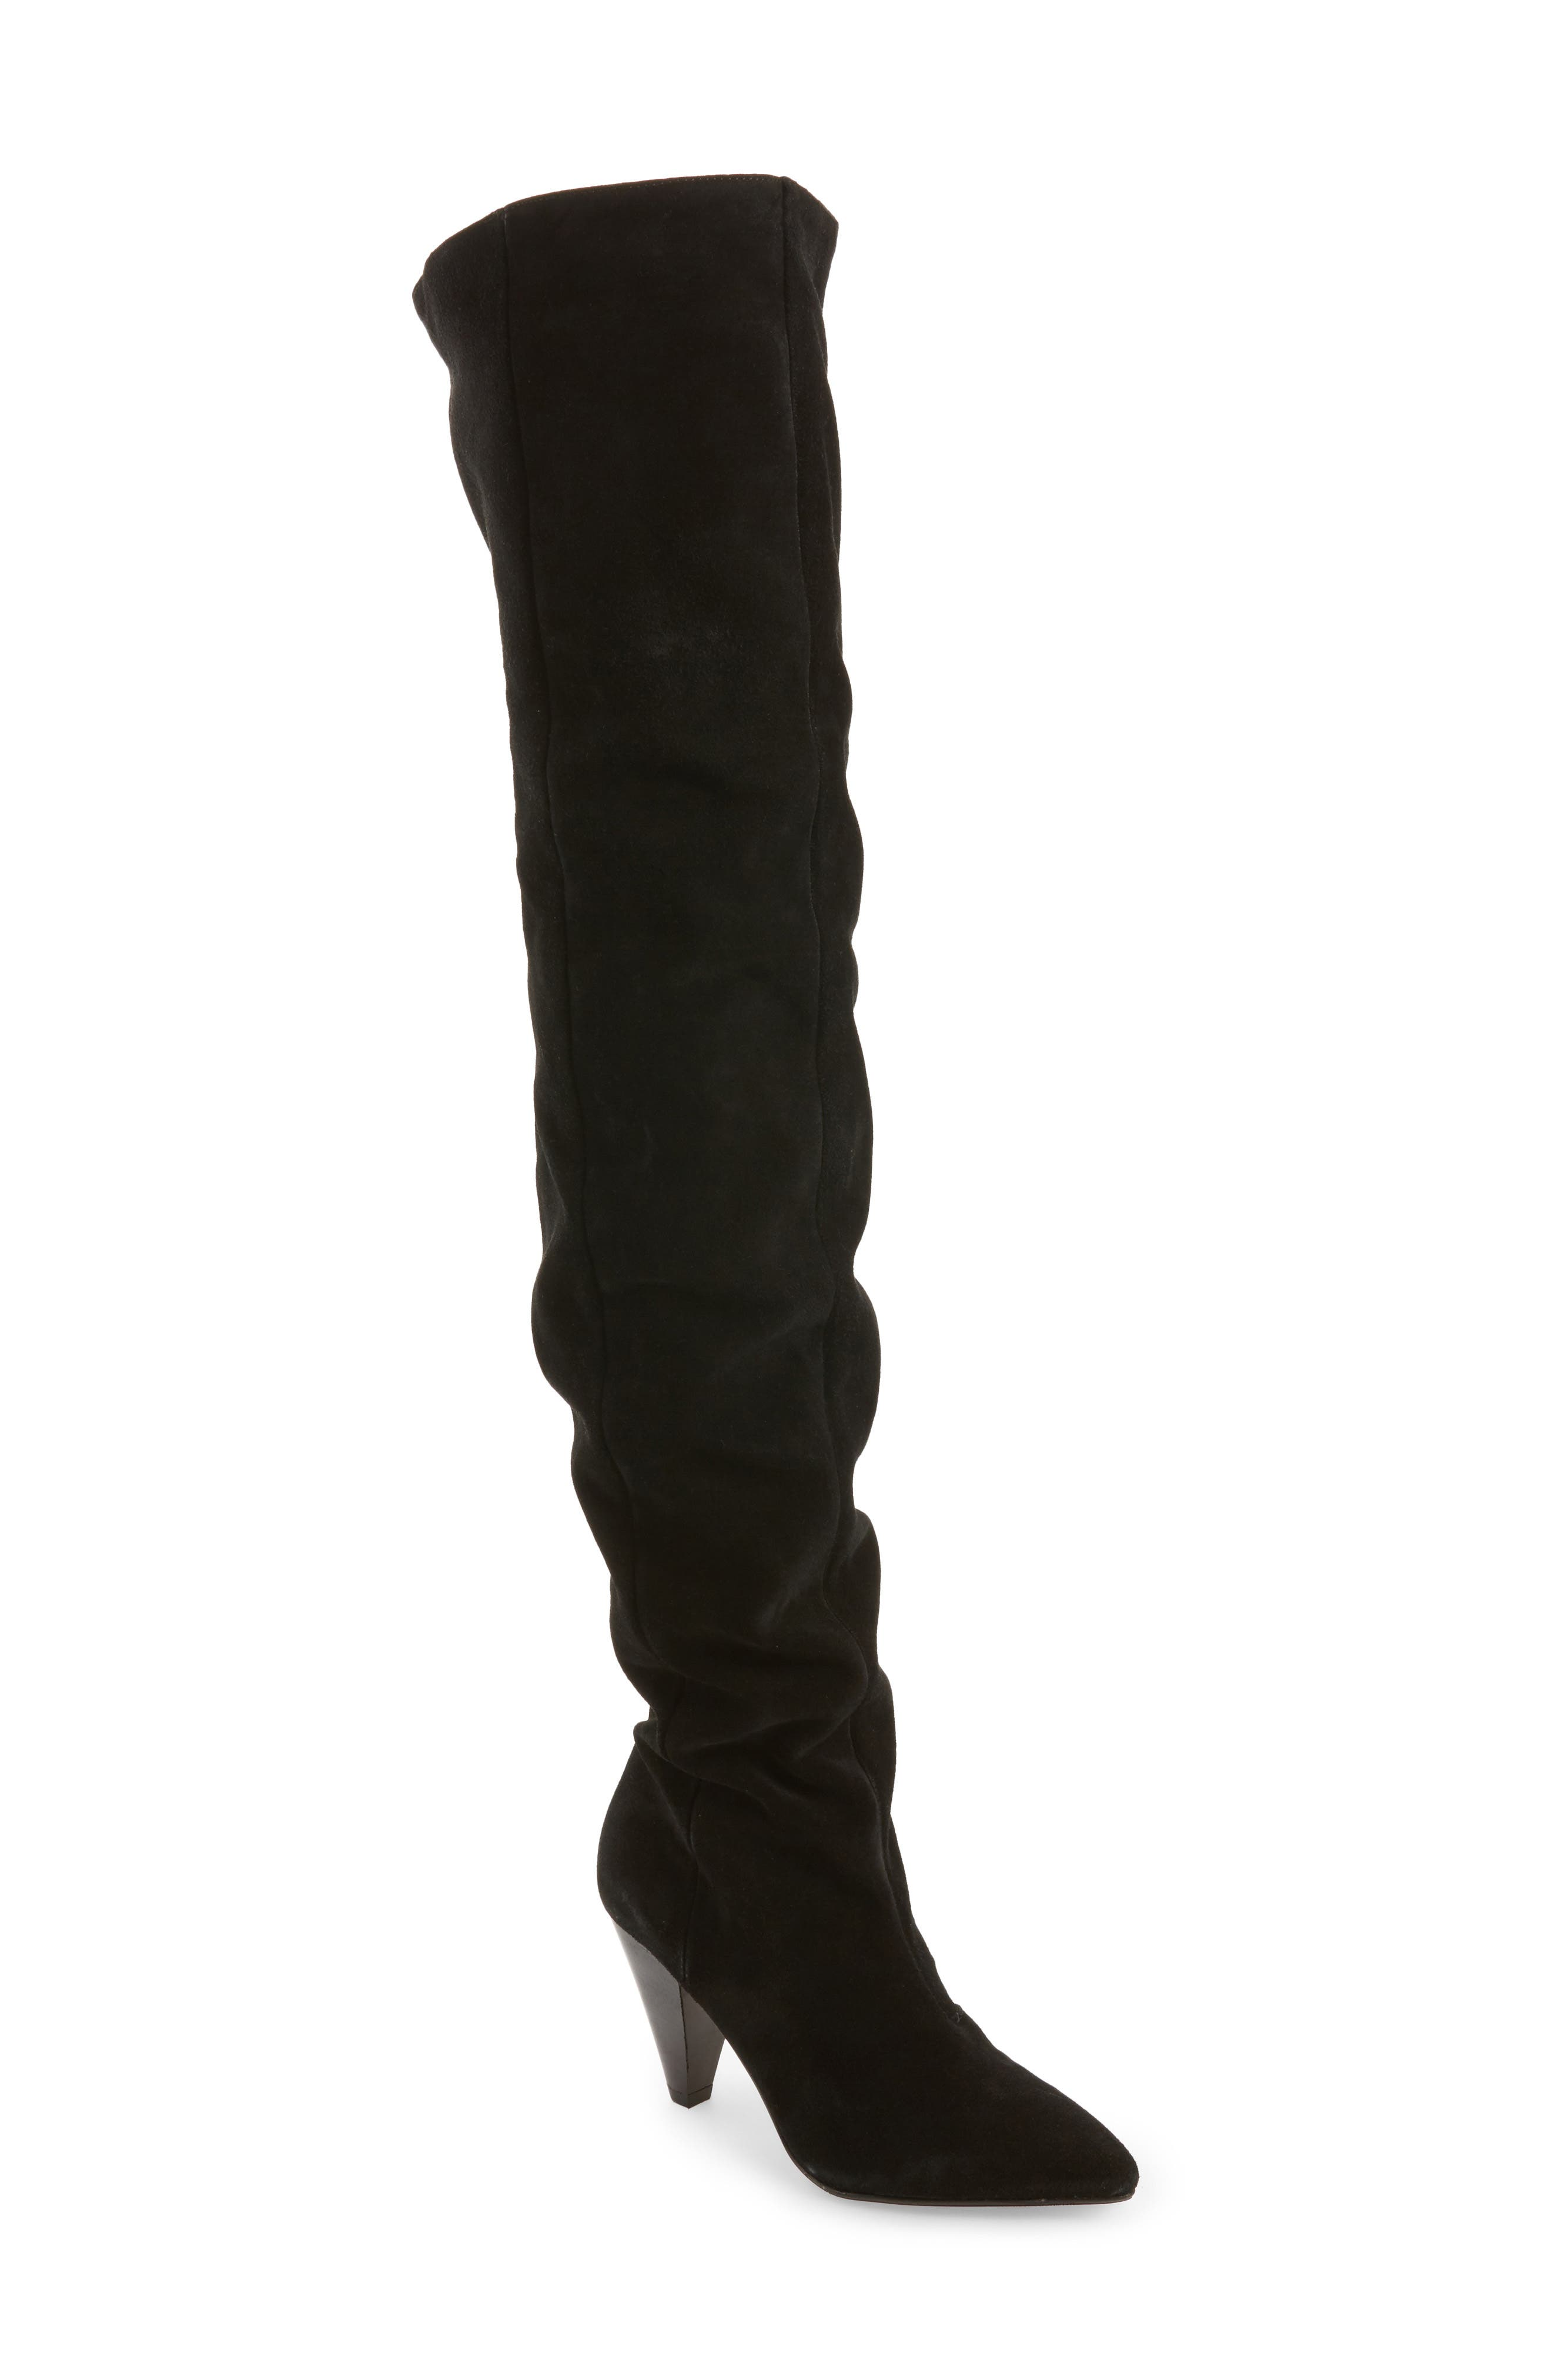 Boxer Thigh High Boots,                         Main,                         color, 001